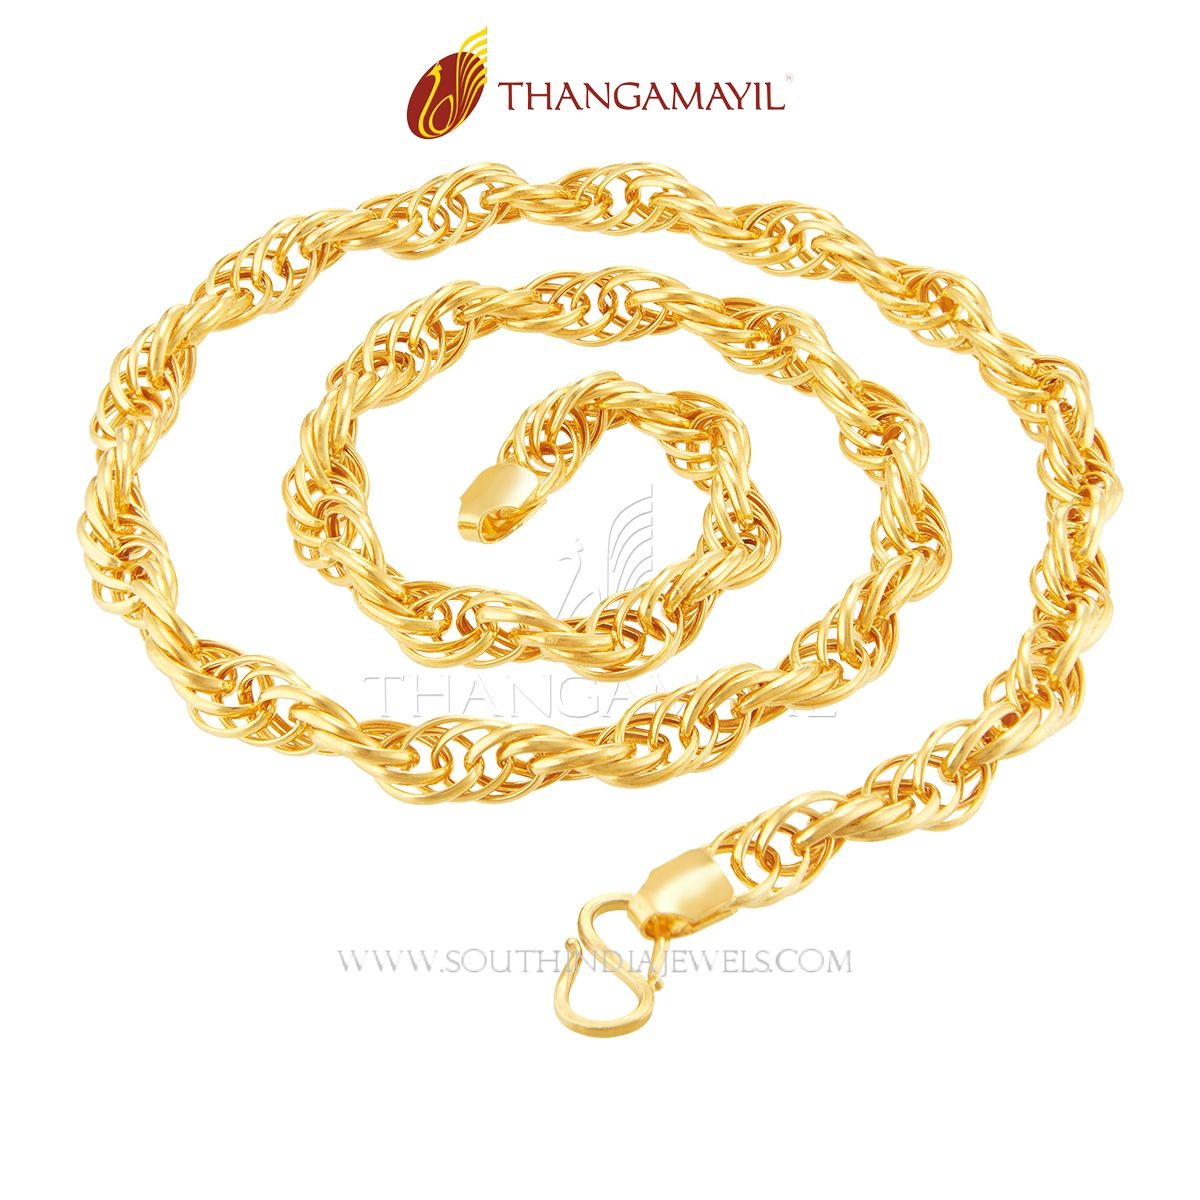 22K Gold Chain From Thangamyil Jewellery | Daily wear, Chains and ...